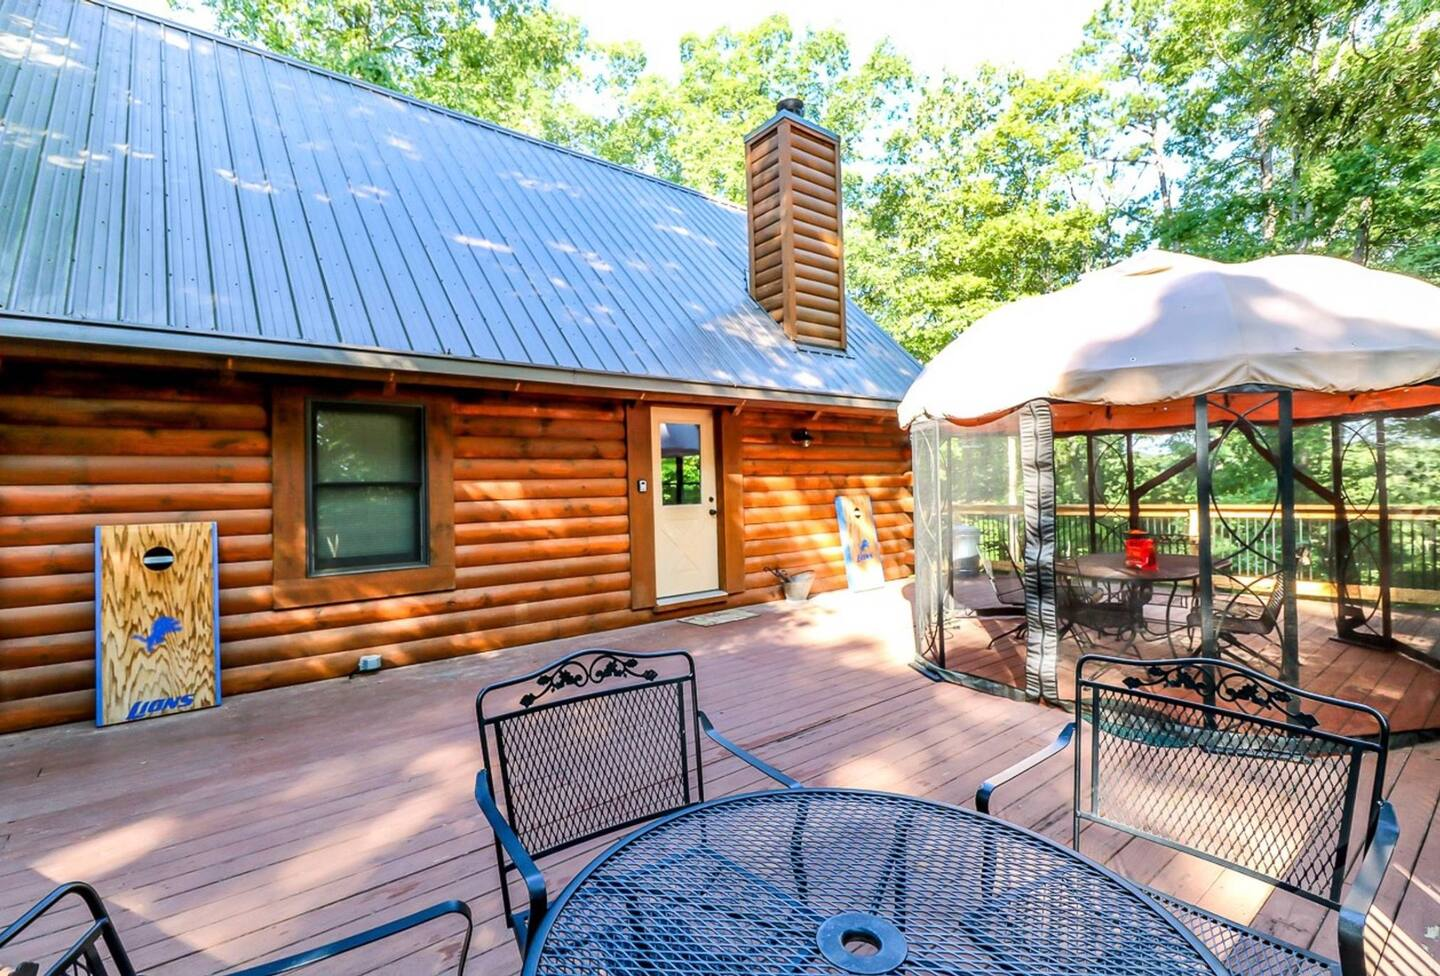 Secluded Cabins in Arkansas with fire pit and grill